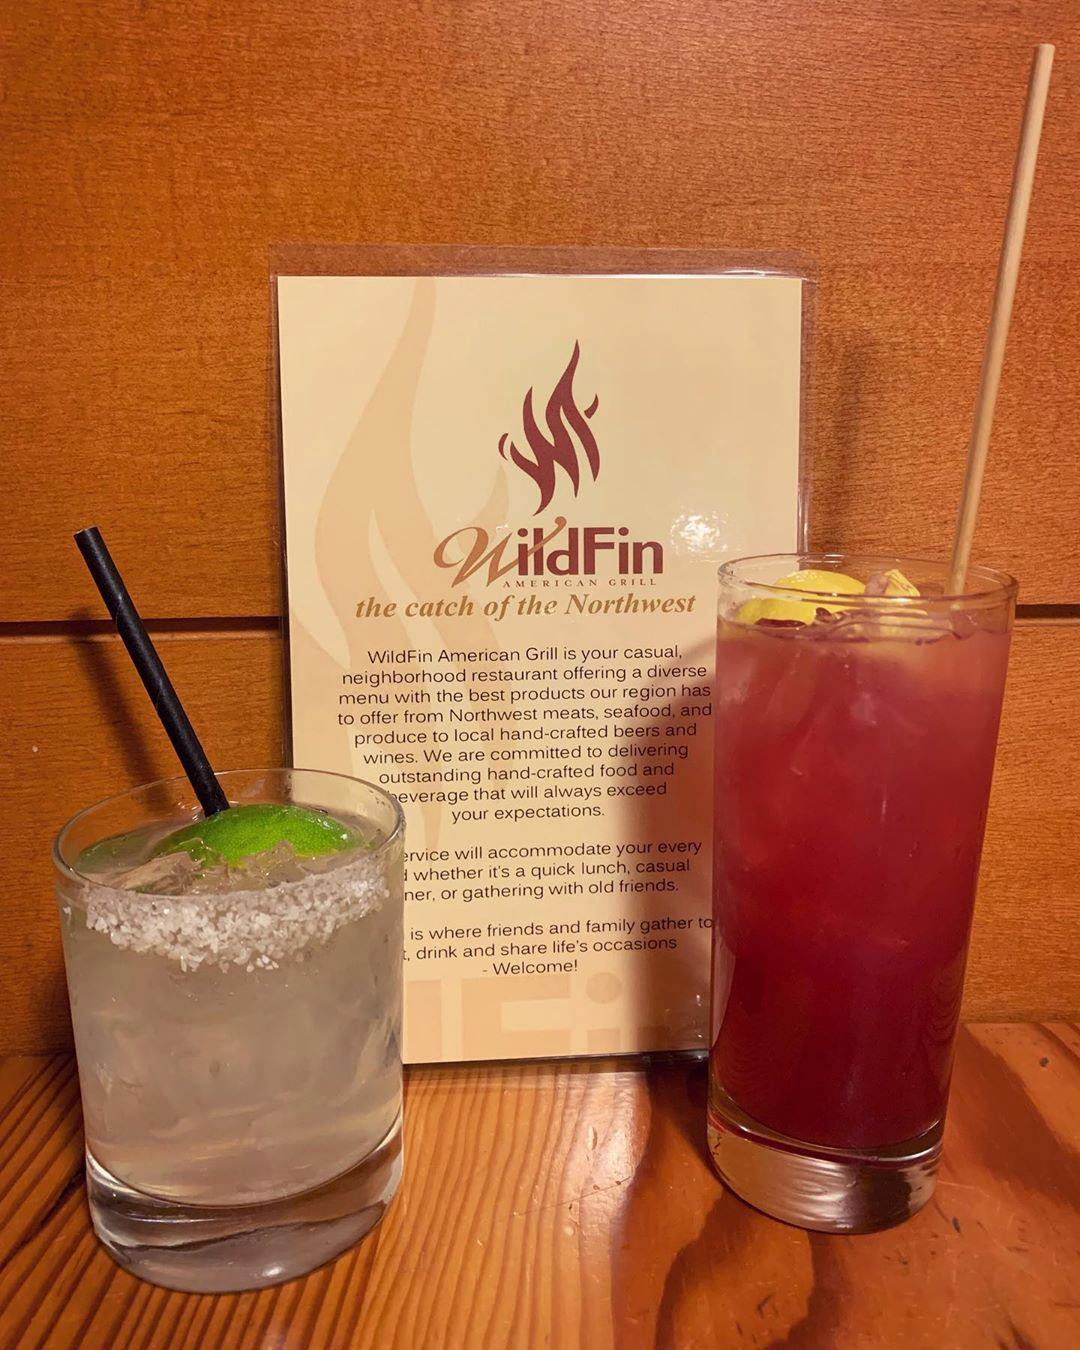 WildFin American Grill - Tacoma 5115 Grand Loop, Tacoma